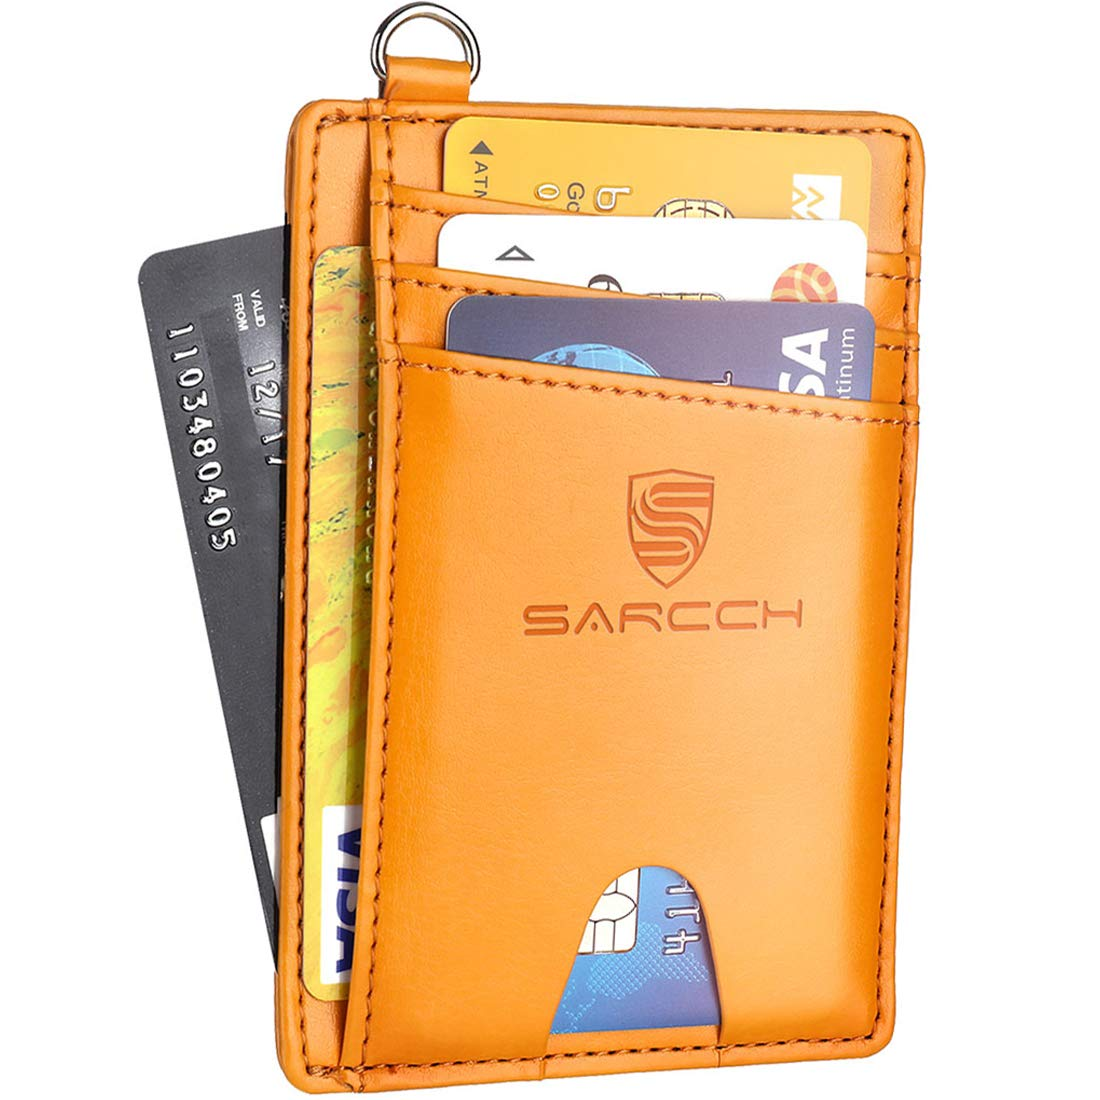 SARCCH Slim Minimalist Front Pocket RFID Blocking Wallets Credit Card Holder with Disassembly D-Shackle for Men Women